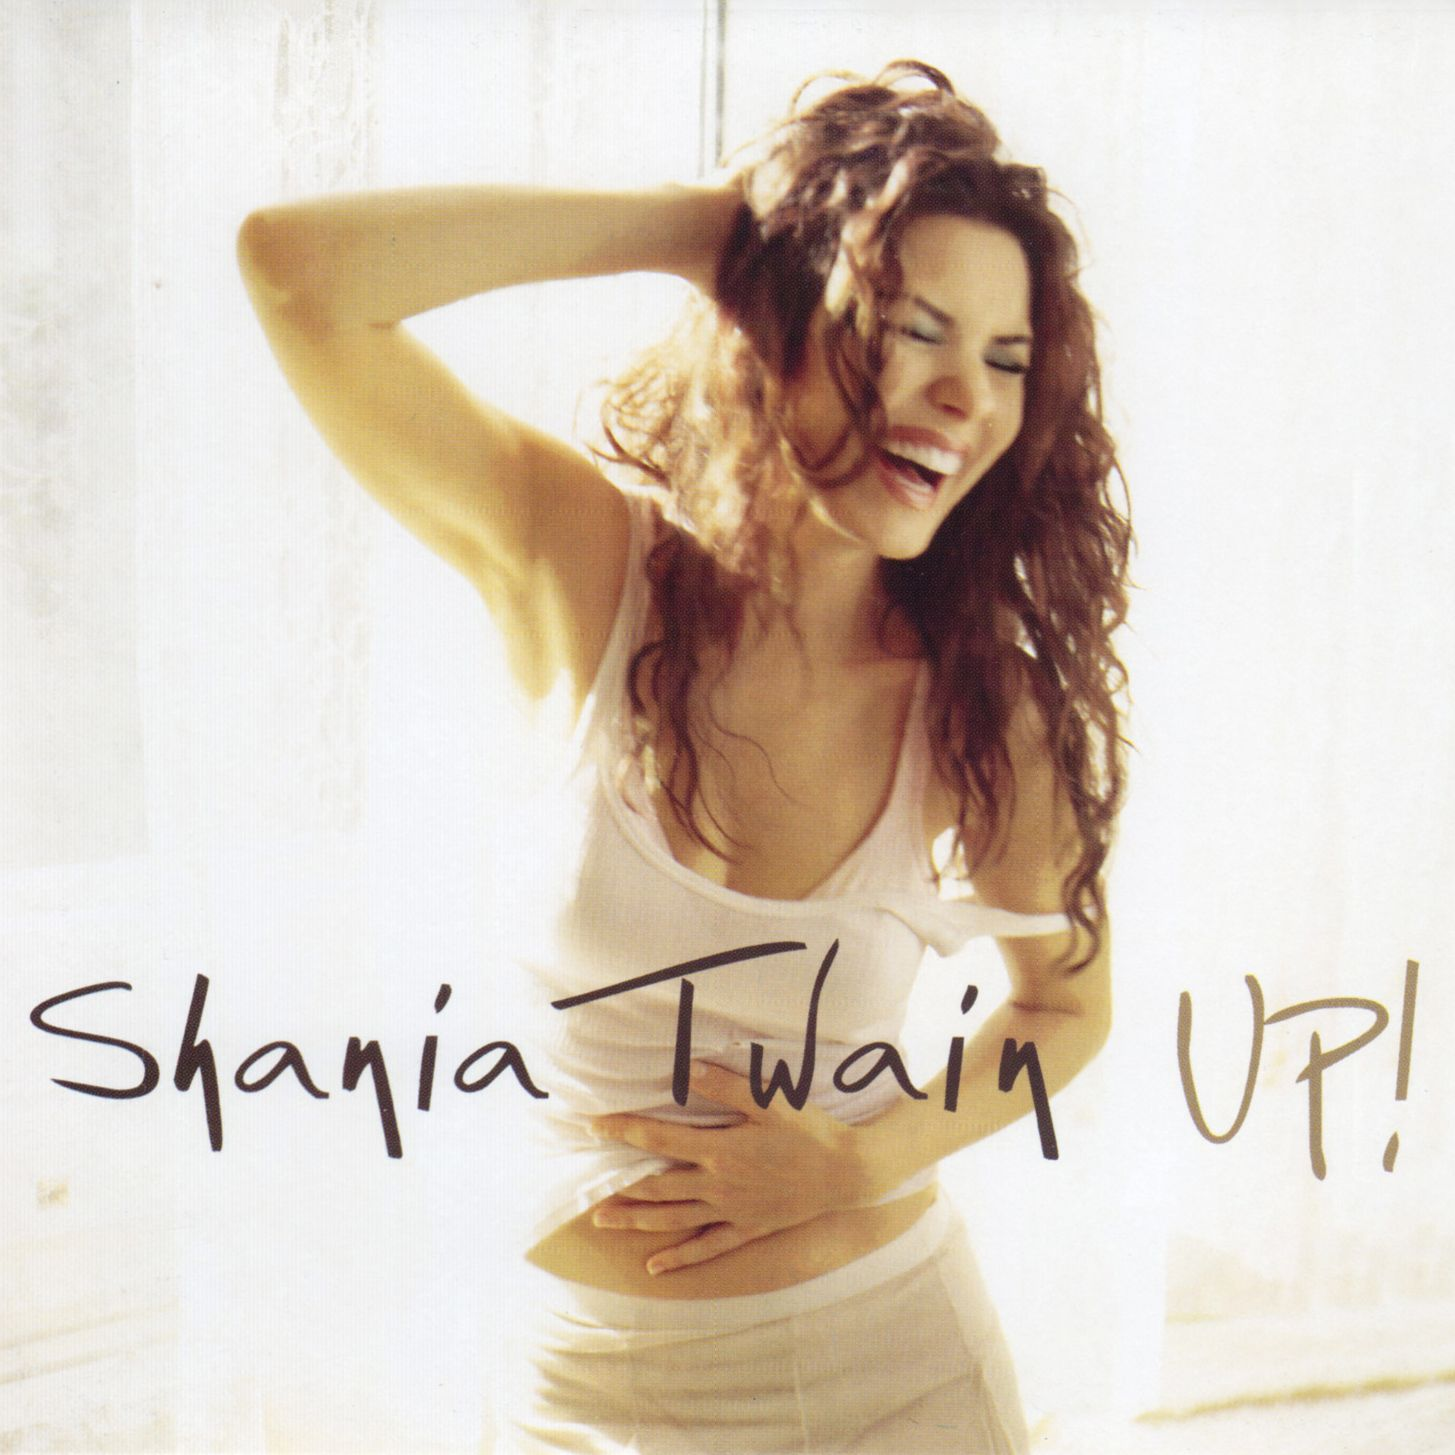 Shania Twain Up Single Mexico Front Shania Twain Cd